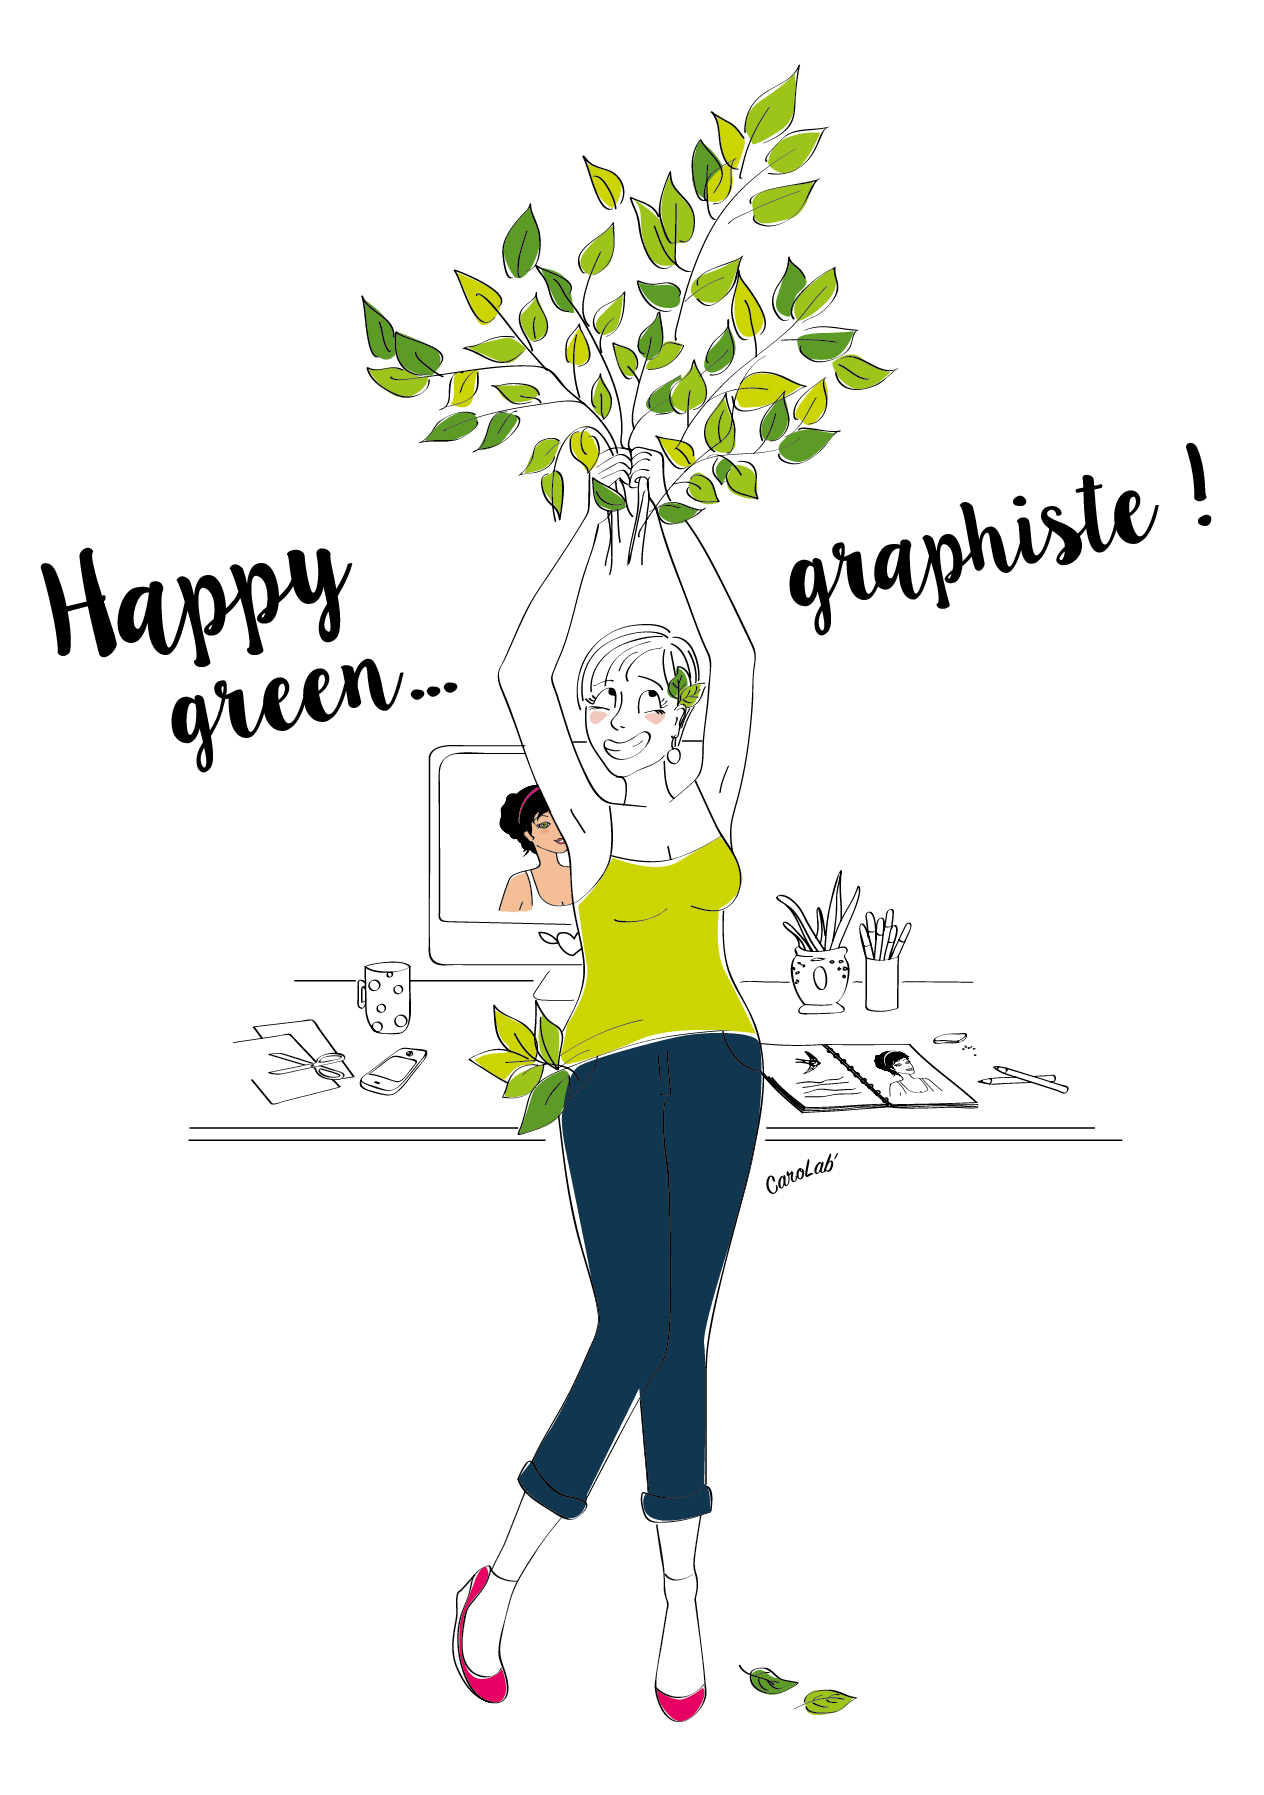 Happy green graphiste